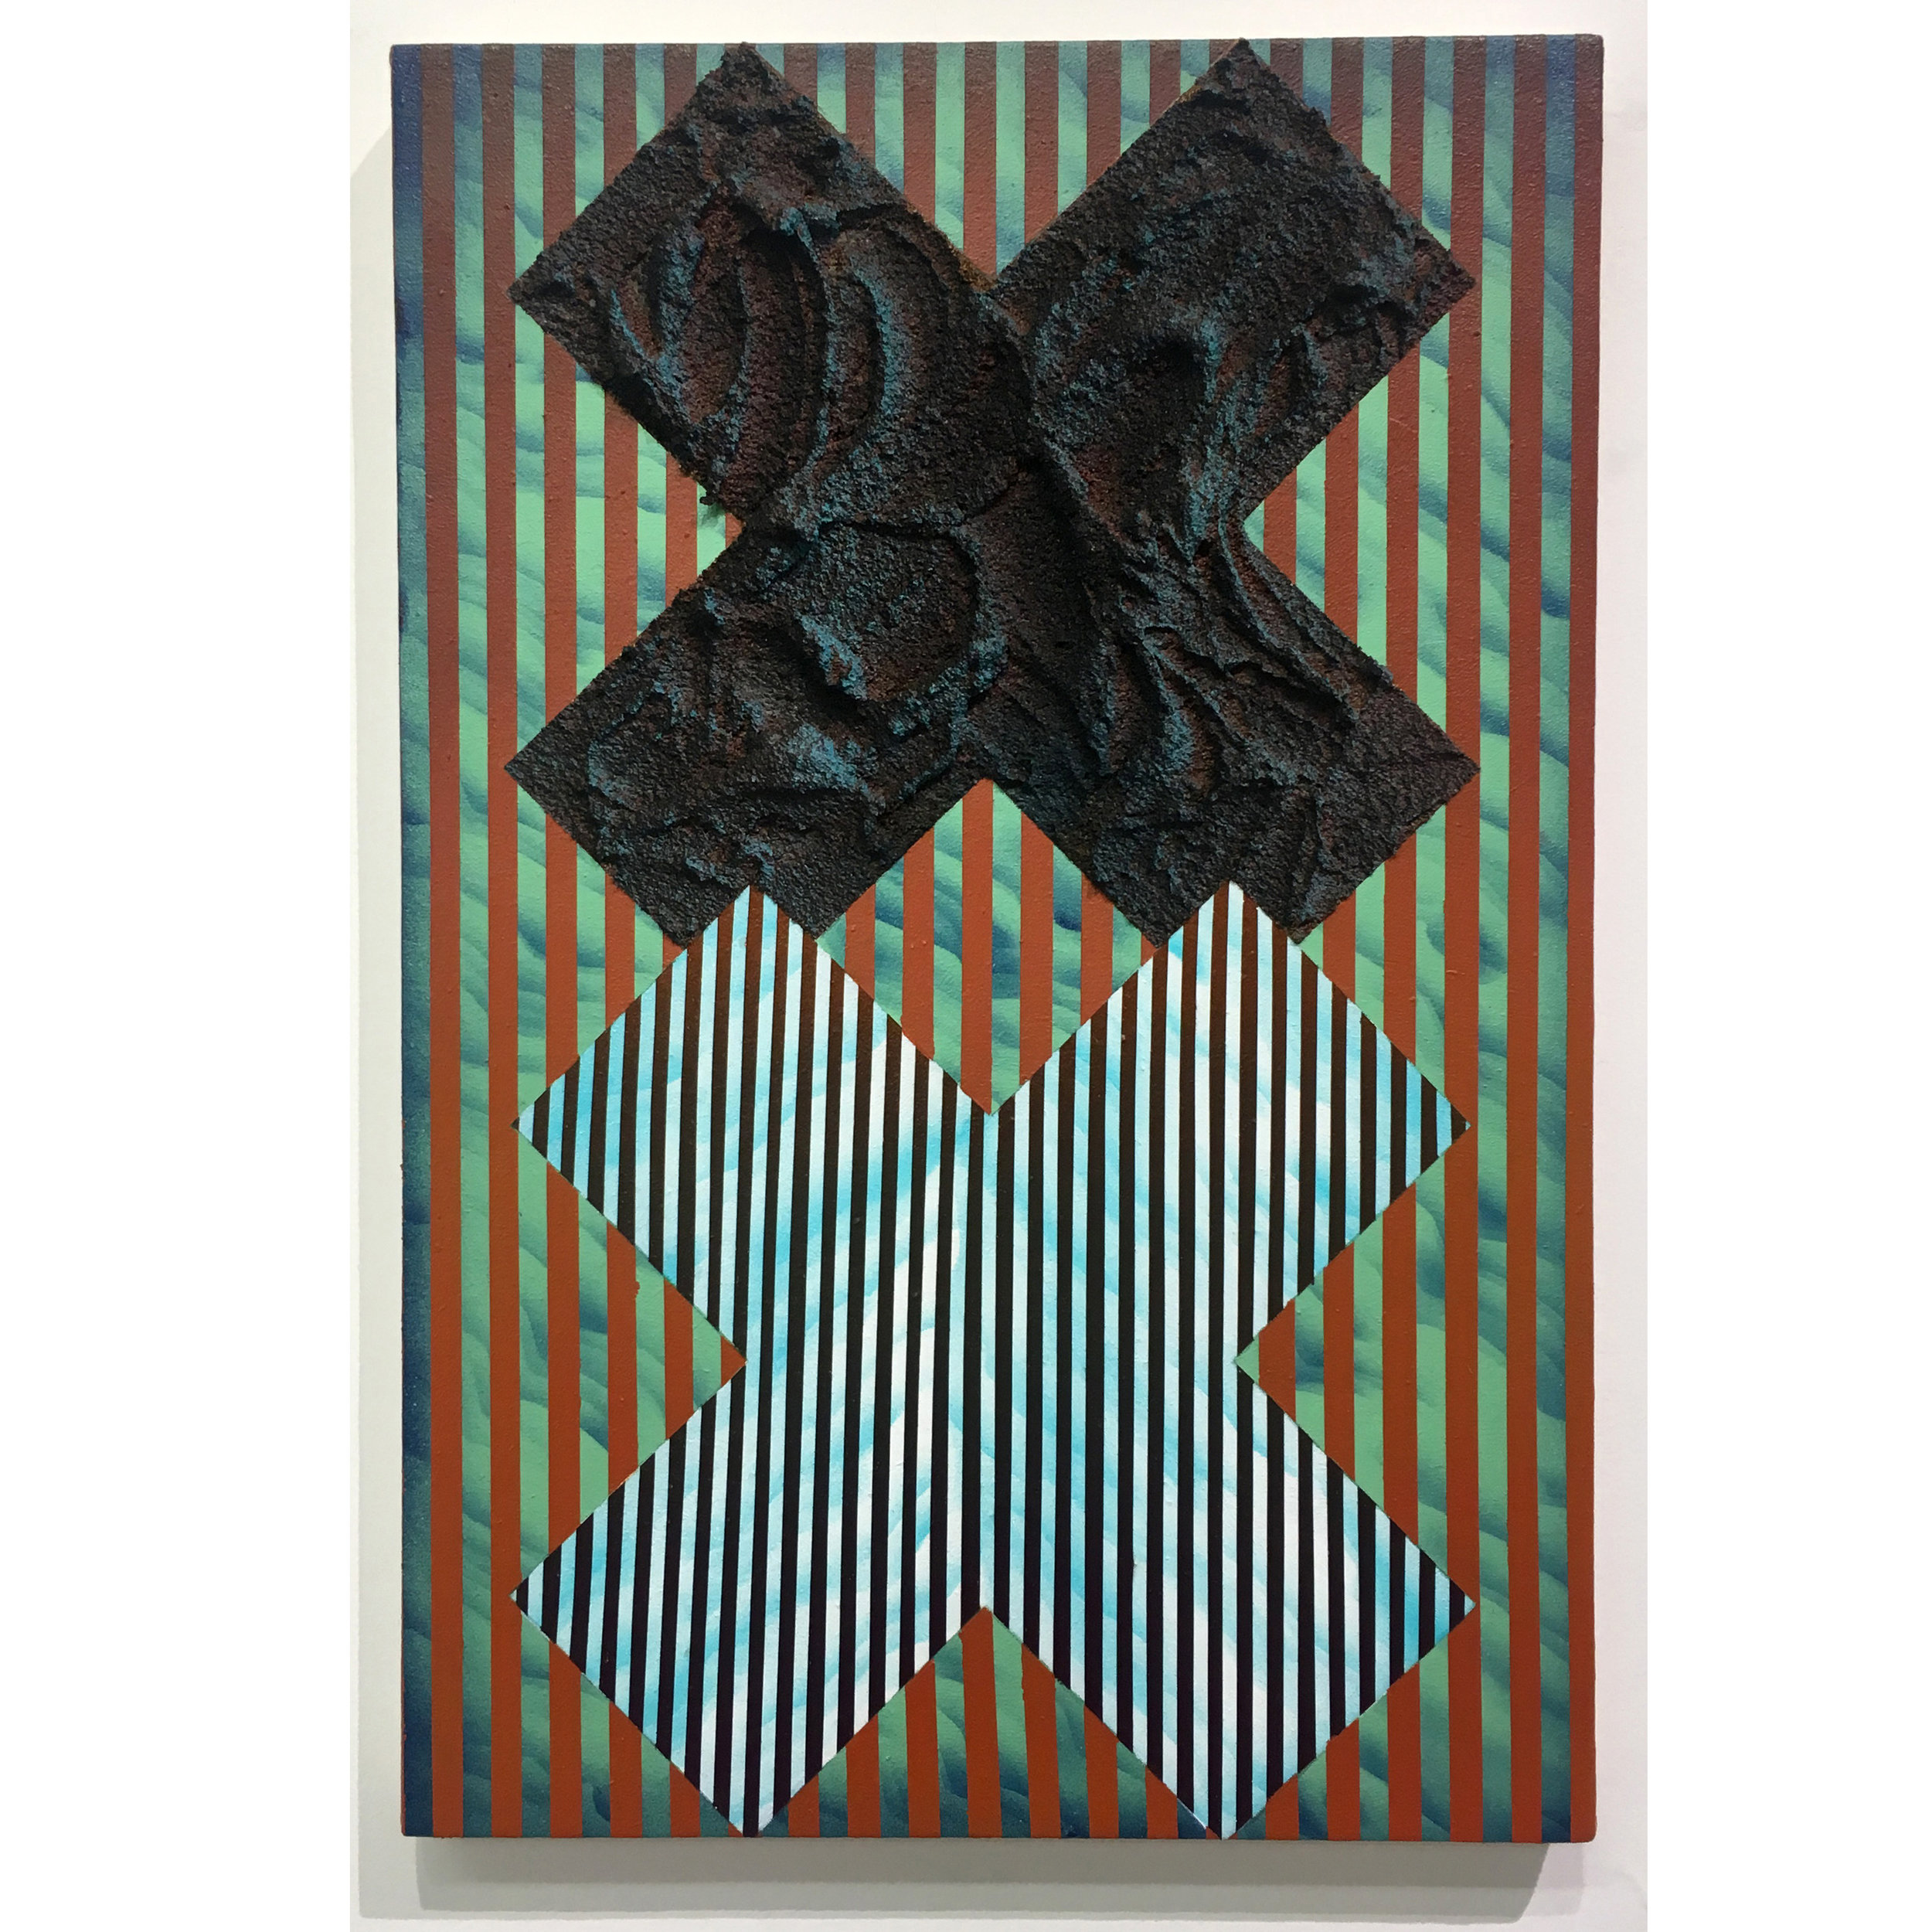 Untitled , 2018, acrylic and pumice gel on canvas, 15 x 10 inches.